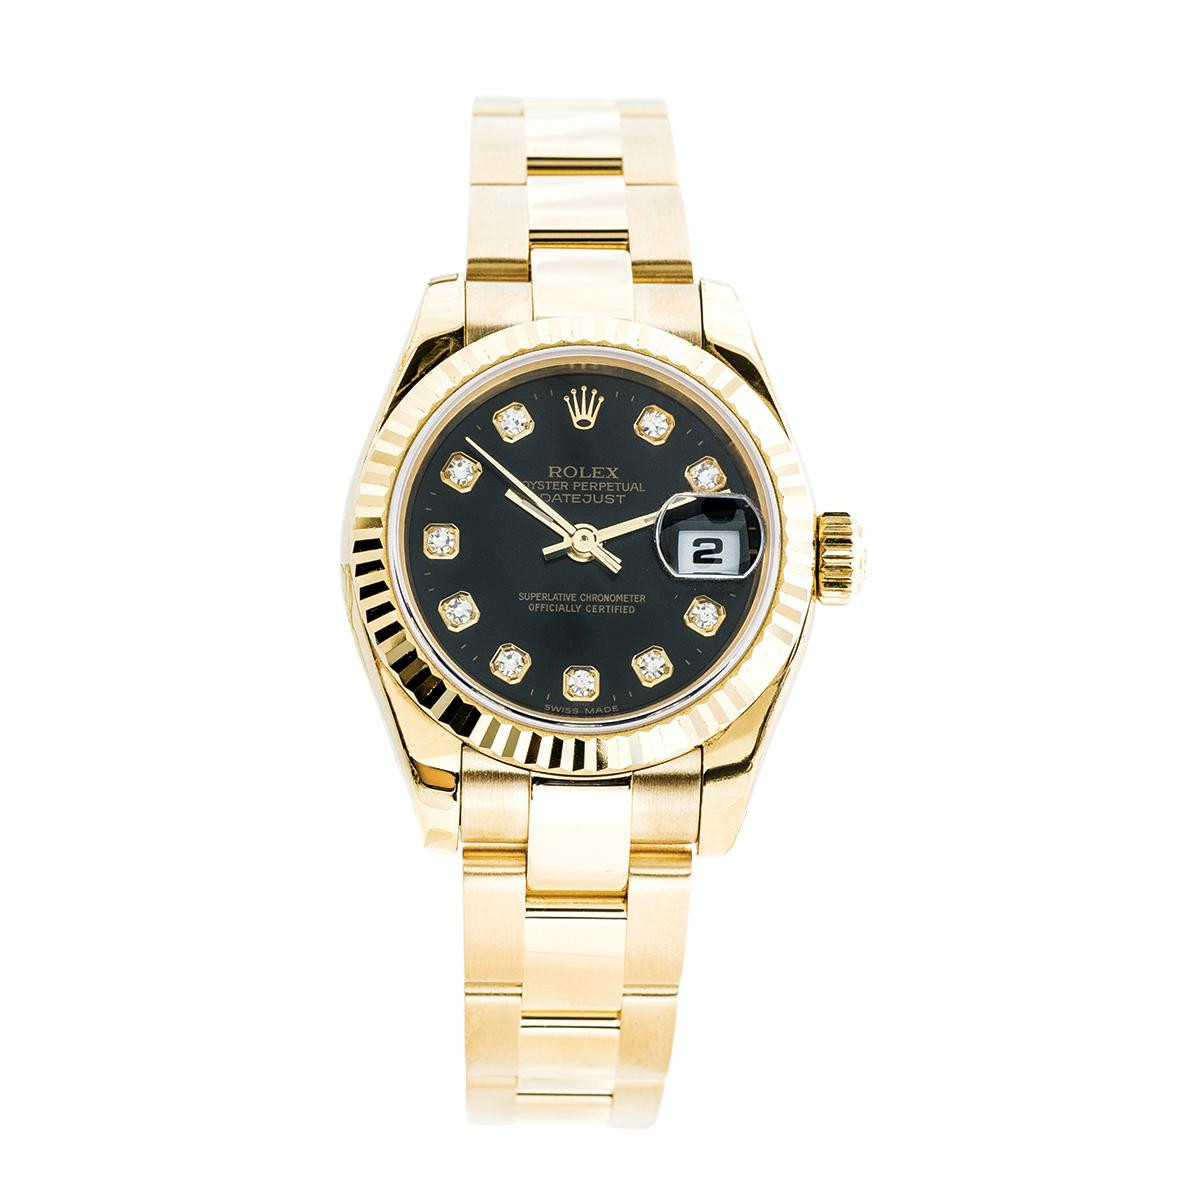 Preowned Women's 18K Gold Rolex Datejust with Diamond Dial